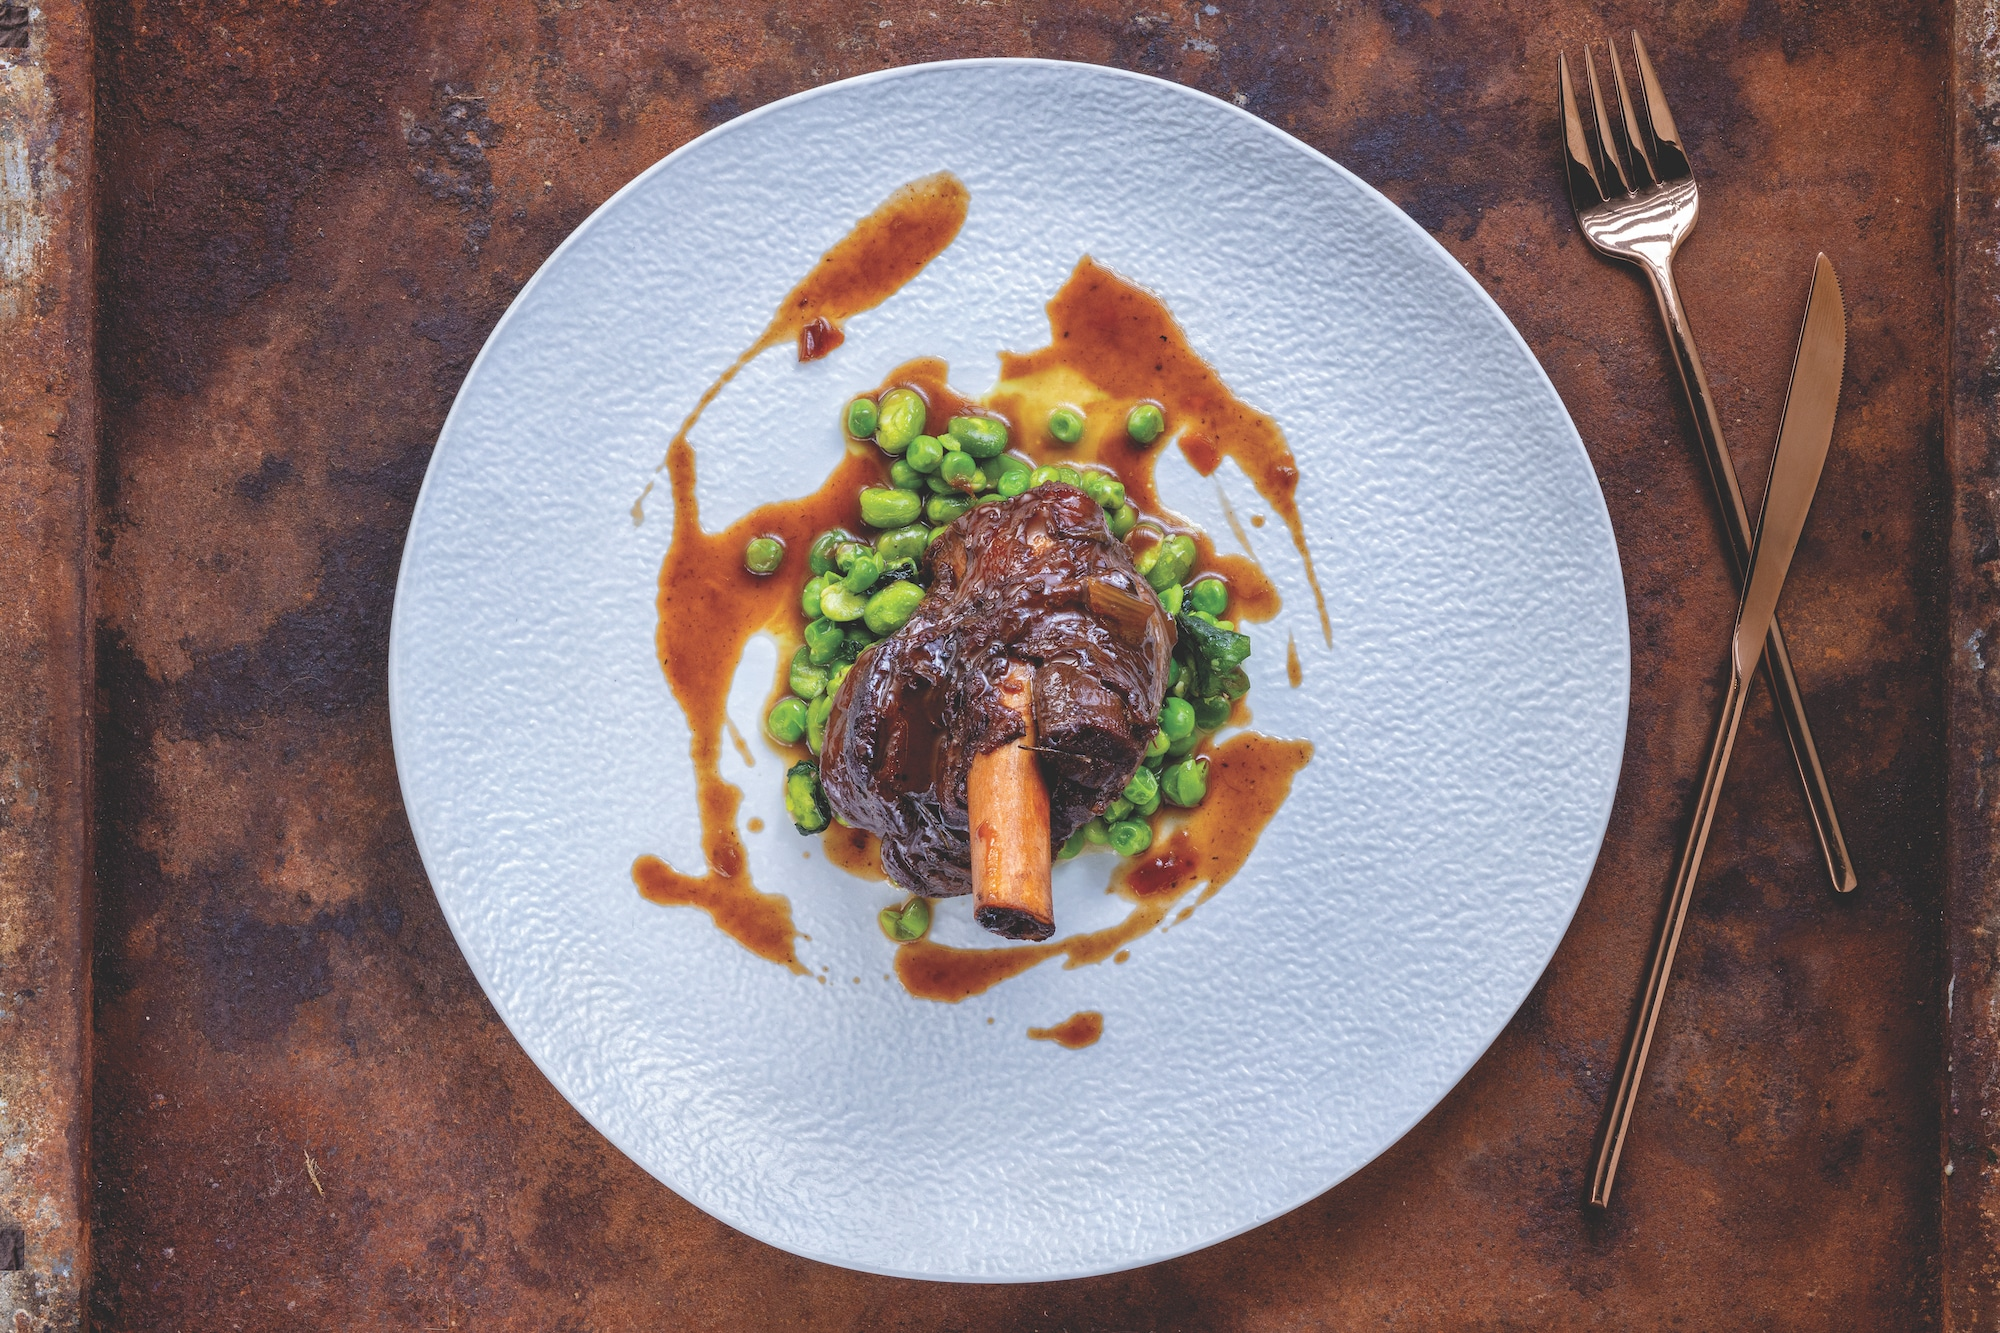 Braised lamb shank with broad beans, peas and mint